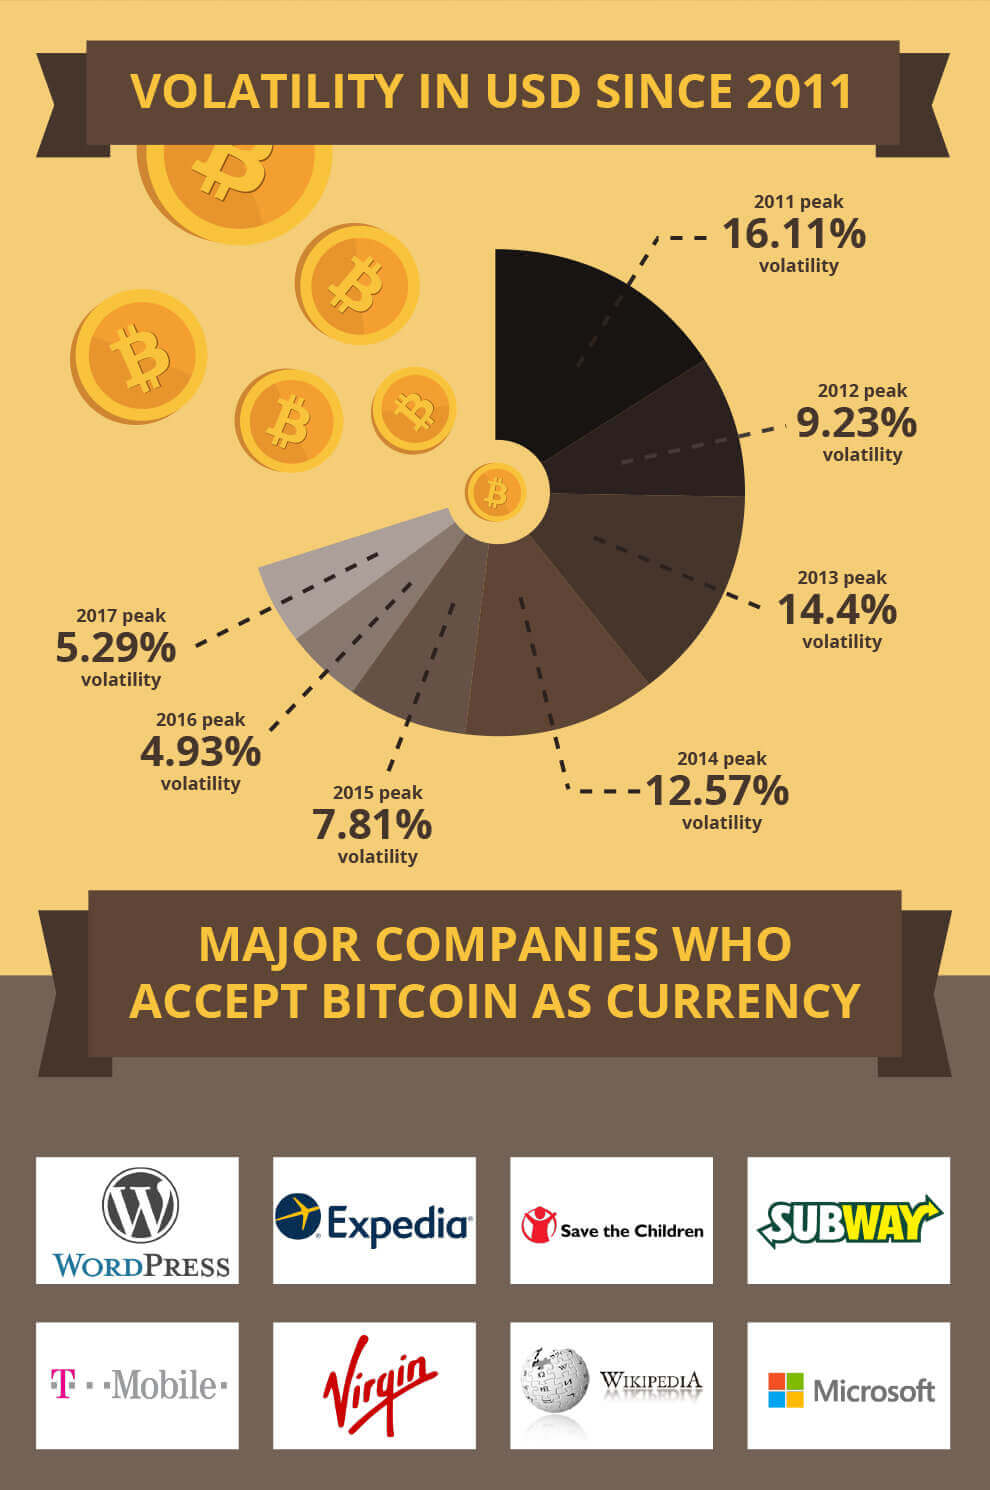 Bitcoin-Volatility-and-Major-Companies